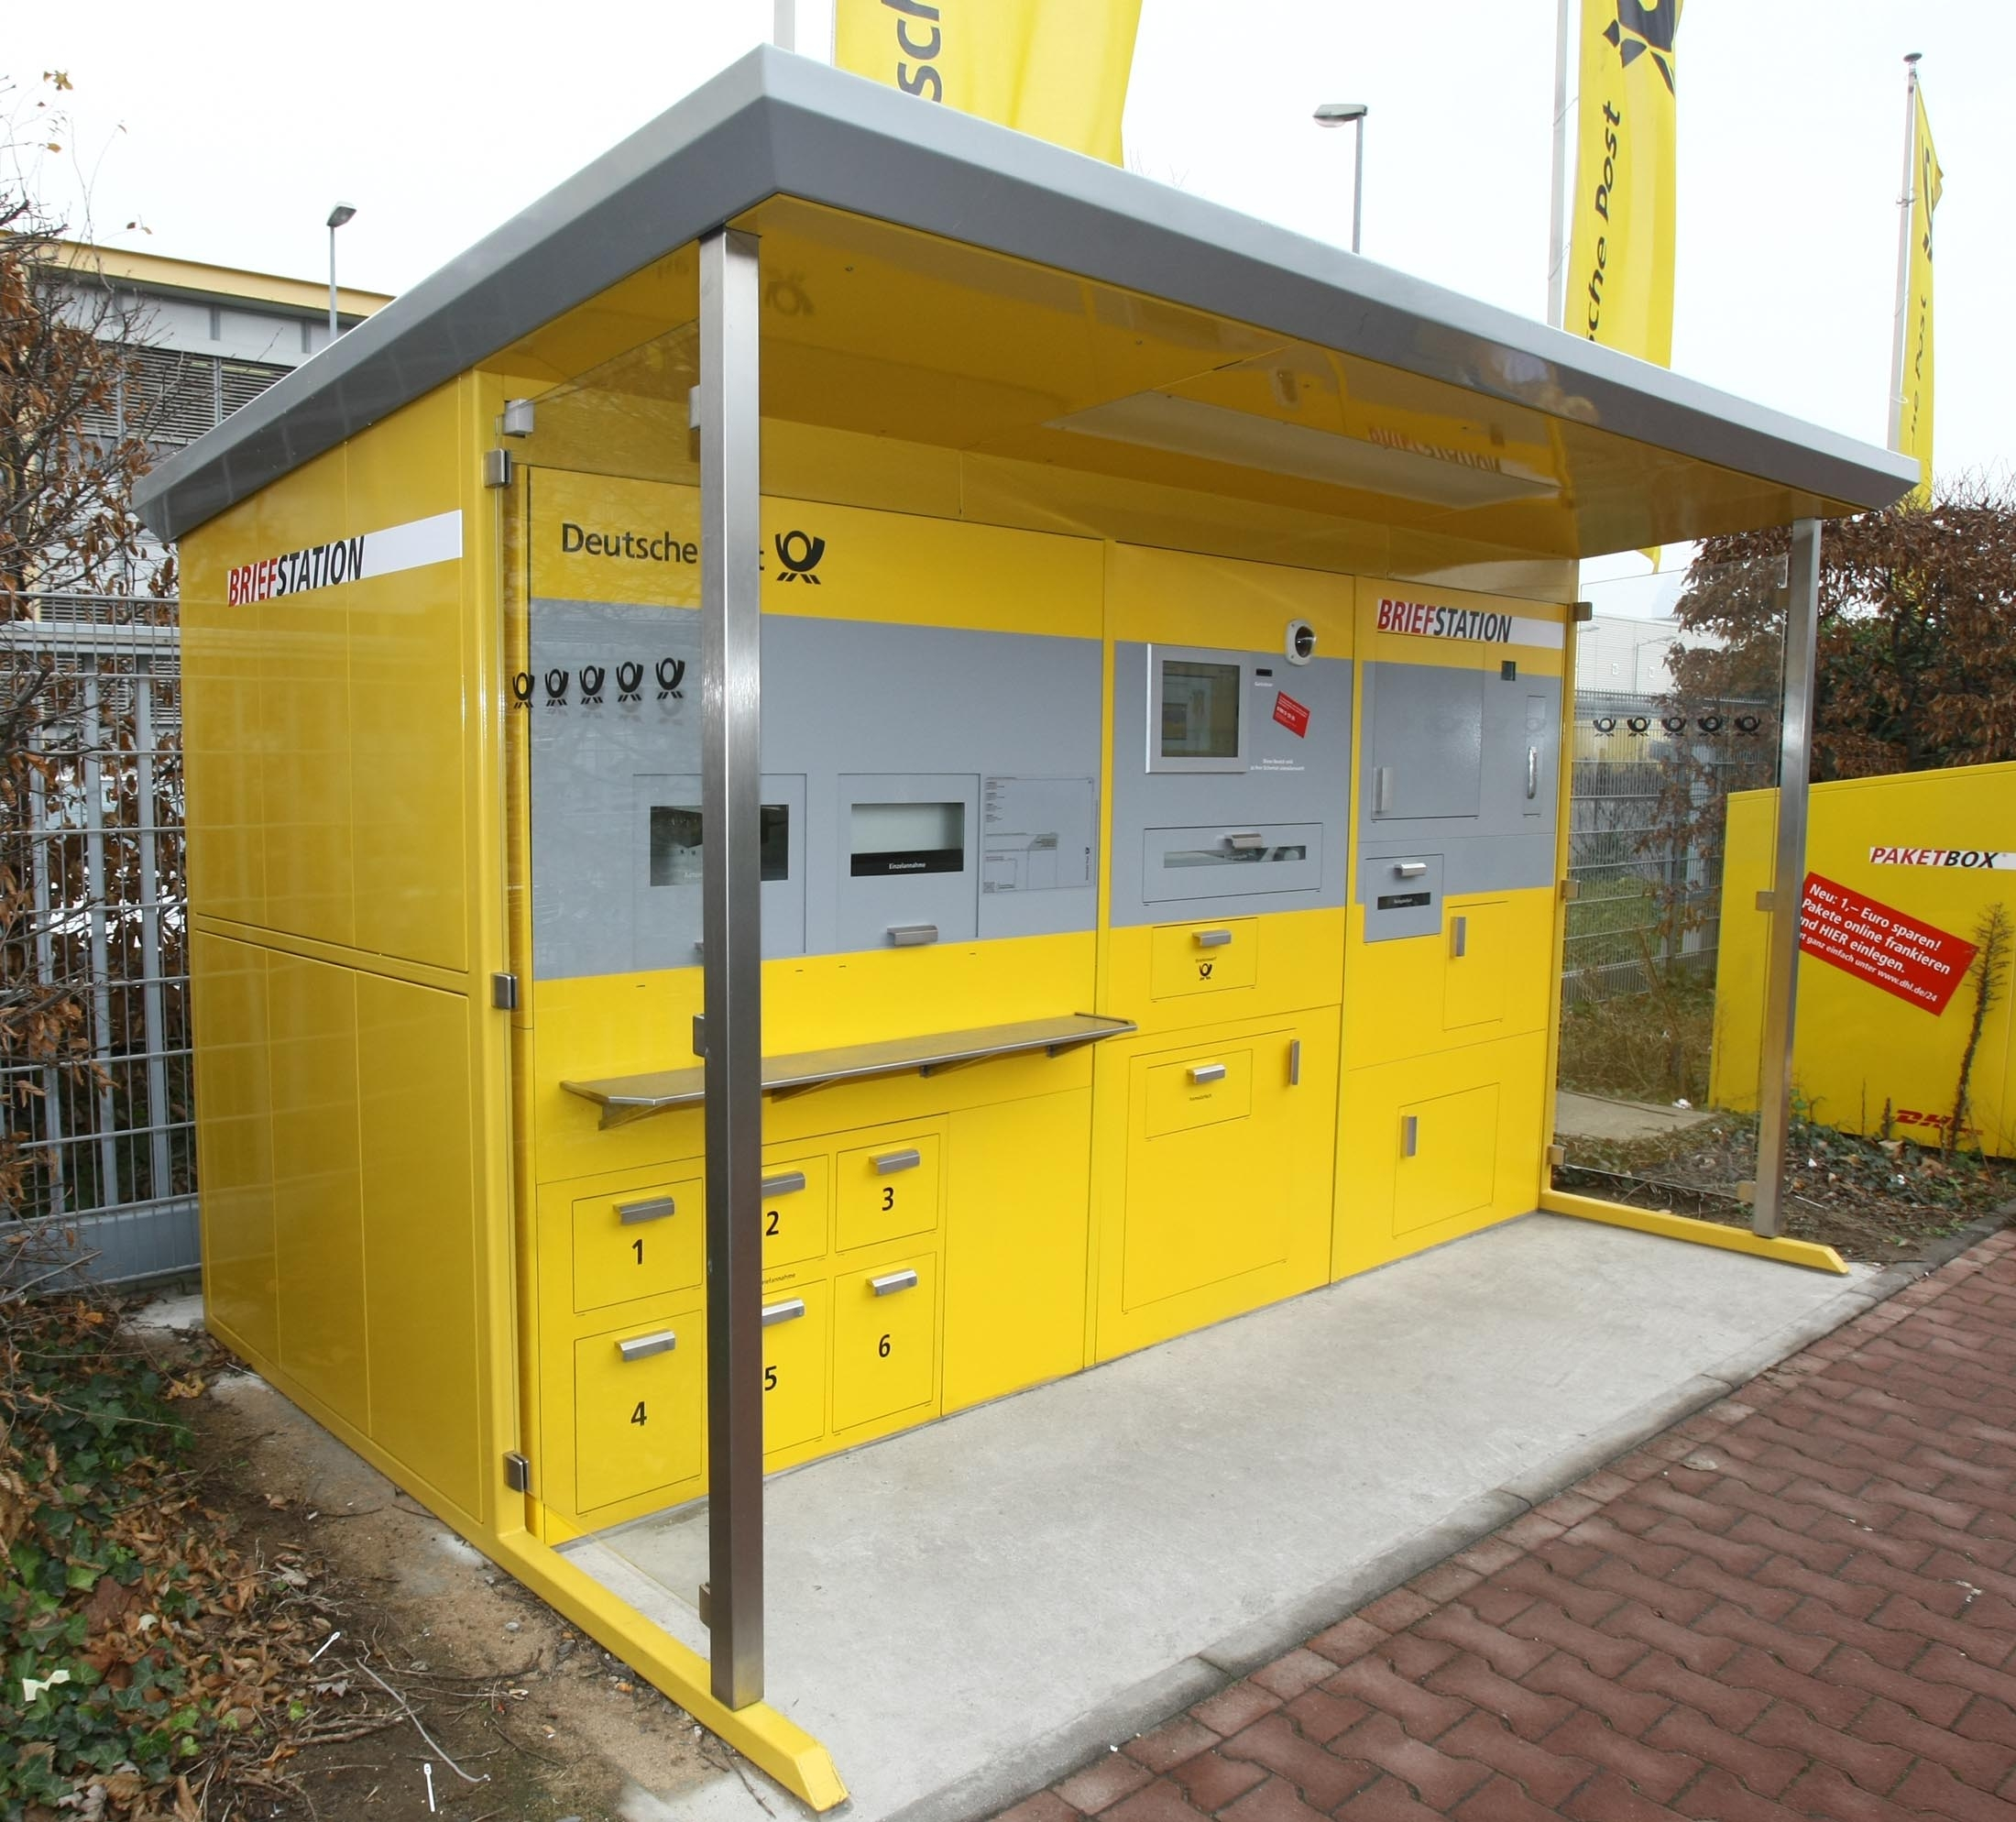 bvdp bundesverband deutscher postdienstleister deutsche post startet briefstation in frankfurt. Black Bedroom Furniture Sets. Home Design Ideas